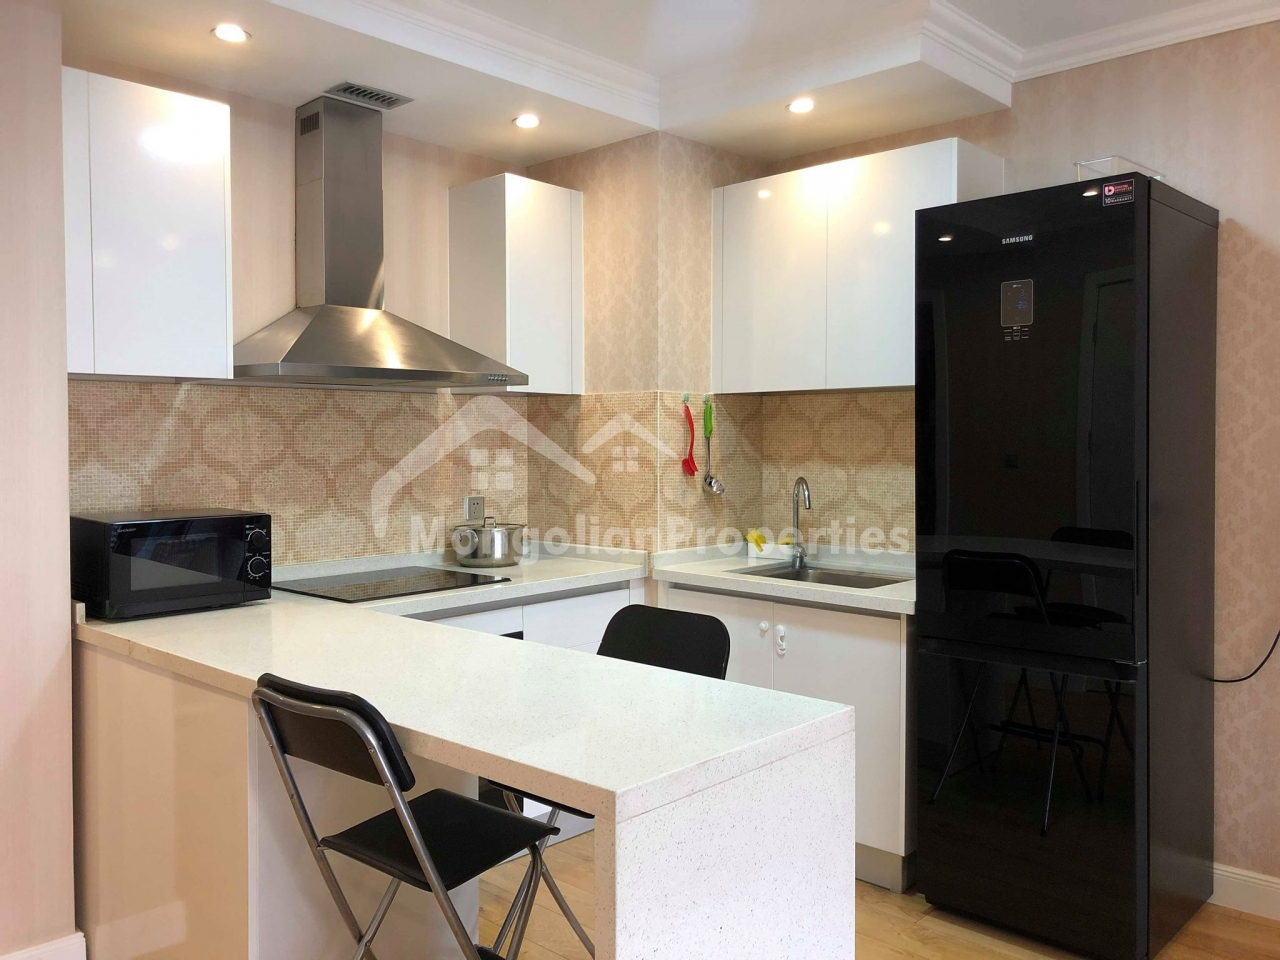 Cozy 2 bedroom apartment is for rent at Encanto tower